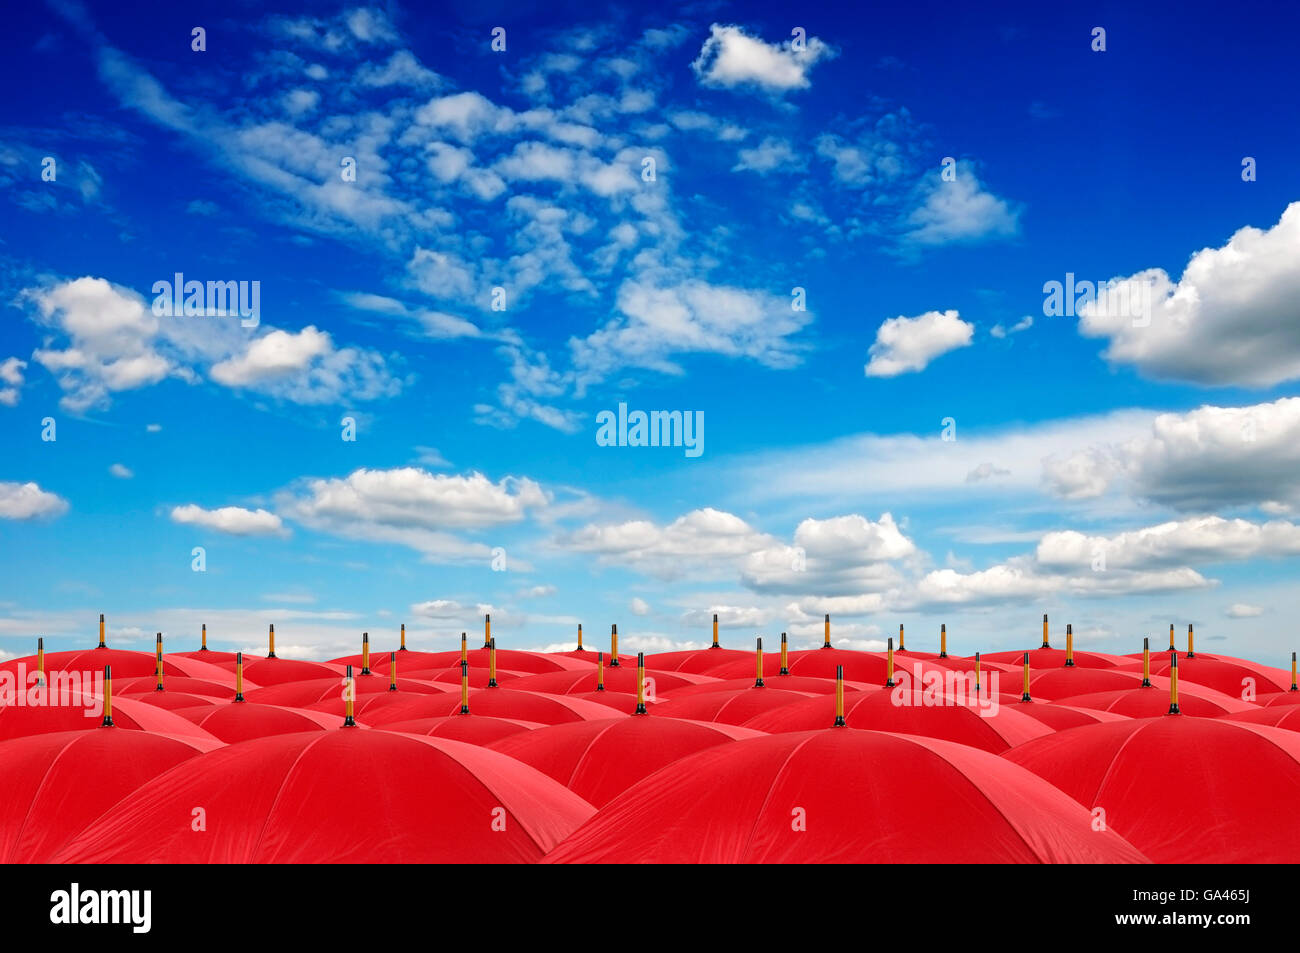 rows of opened red umbrellas - Stock Image